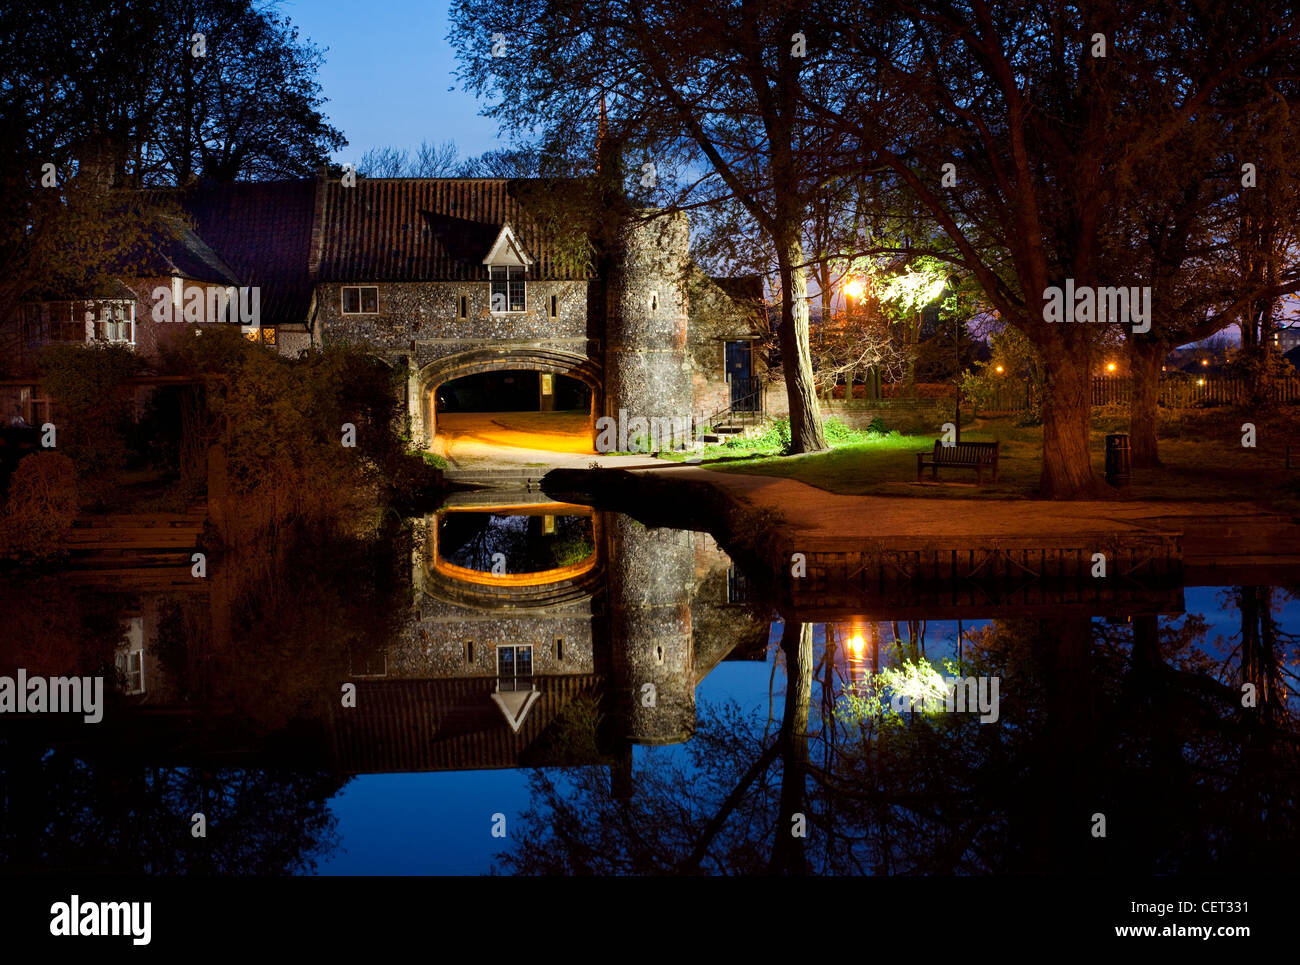 Pulls Ferry, once a 15th century watergate on the River Wensum, illuminated at night. - Stock Image